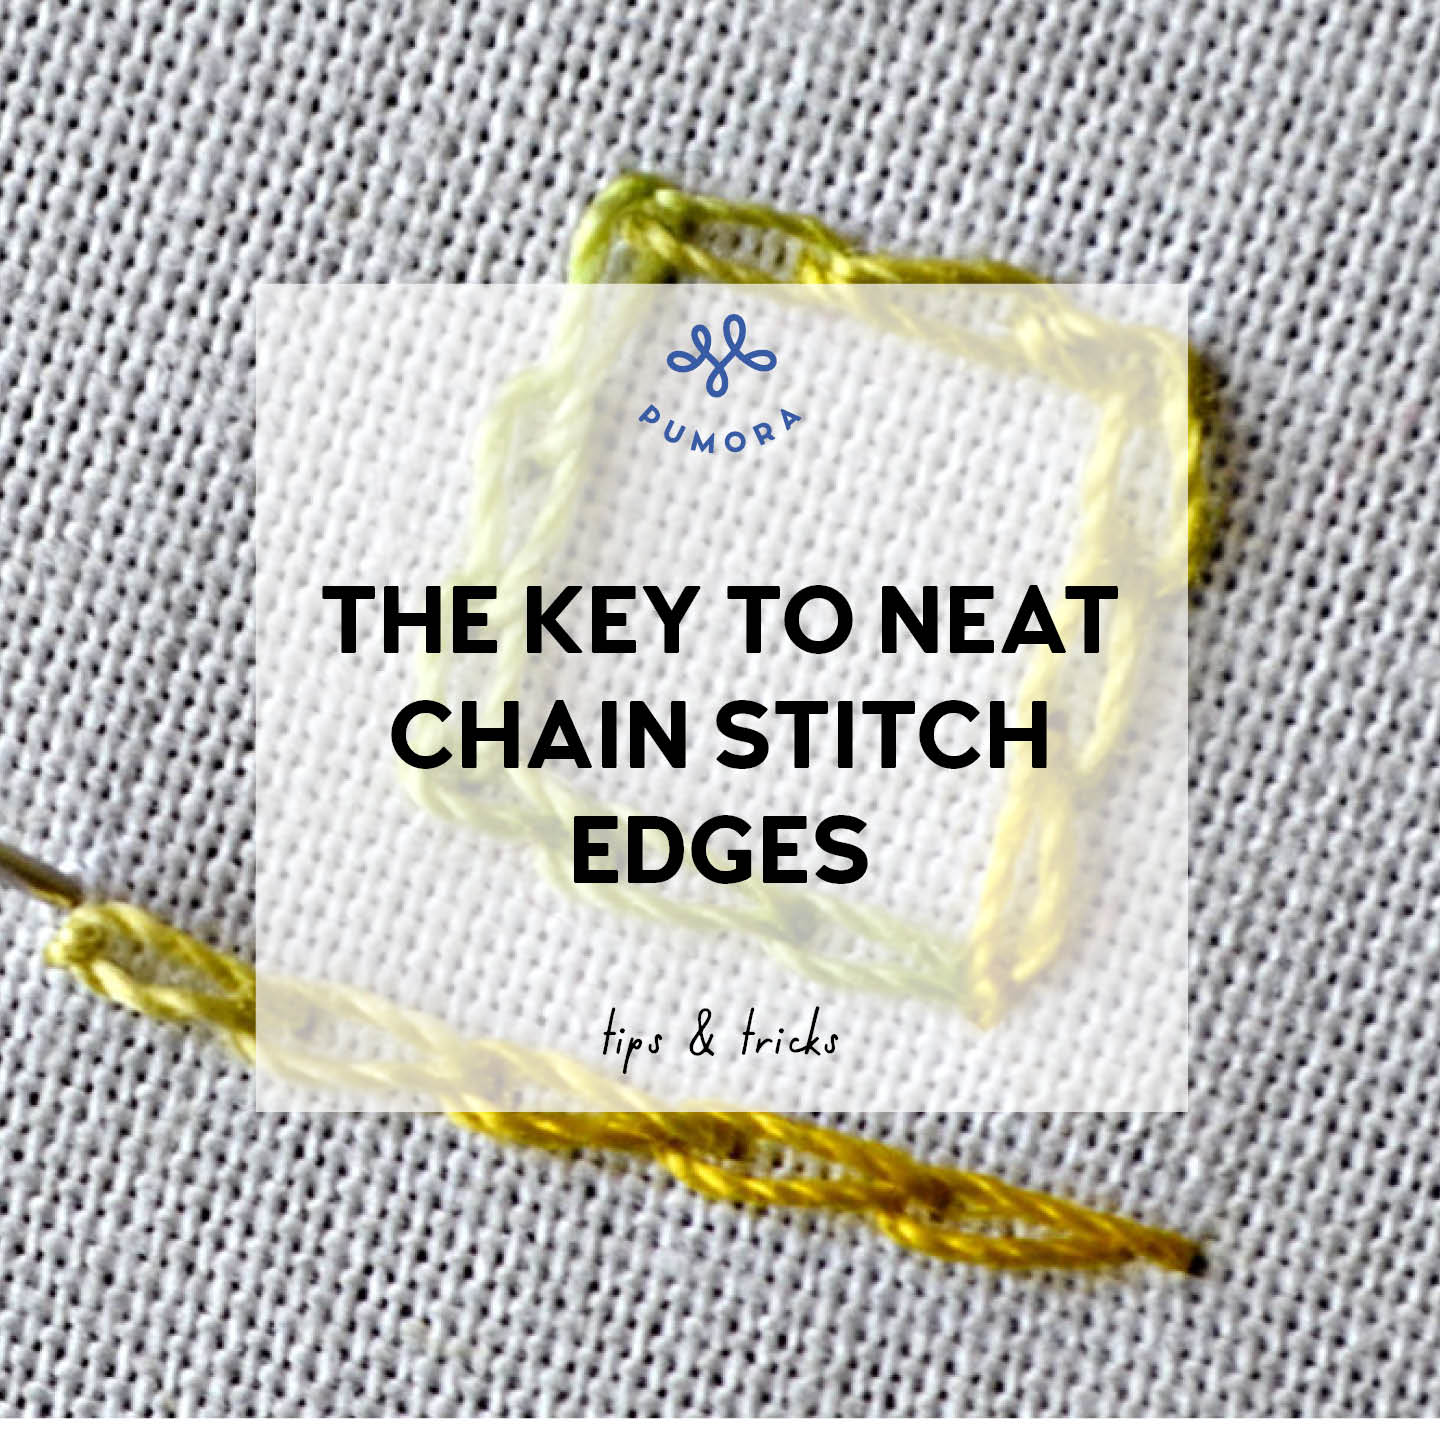 the key to neat chain stitch edges